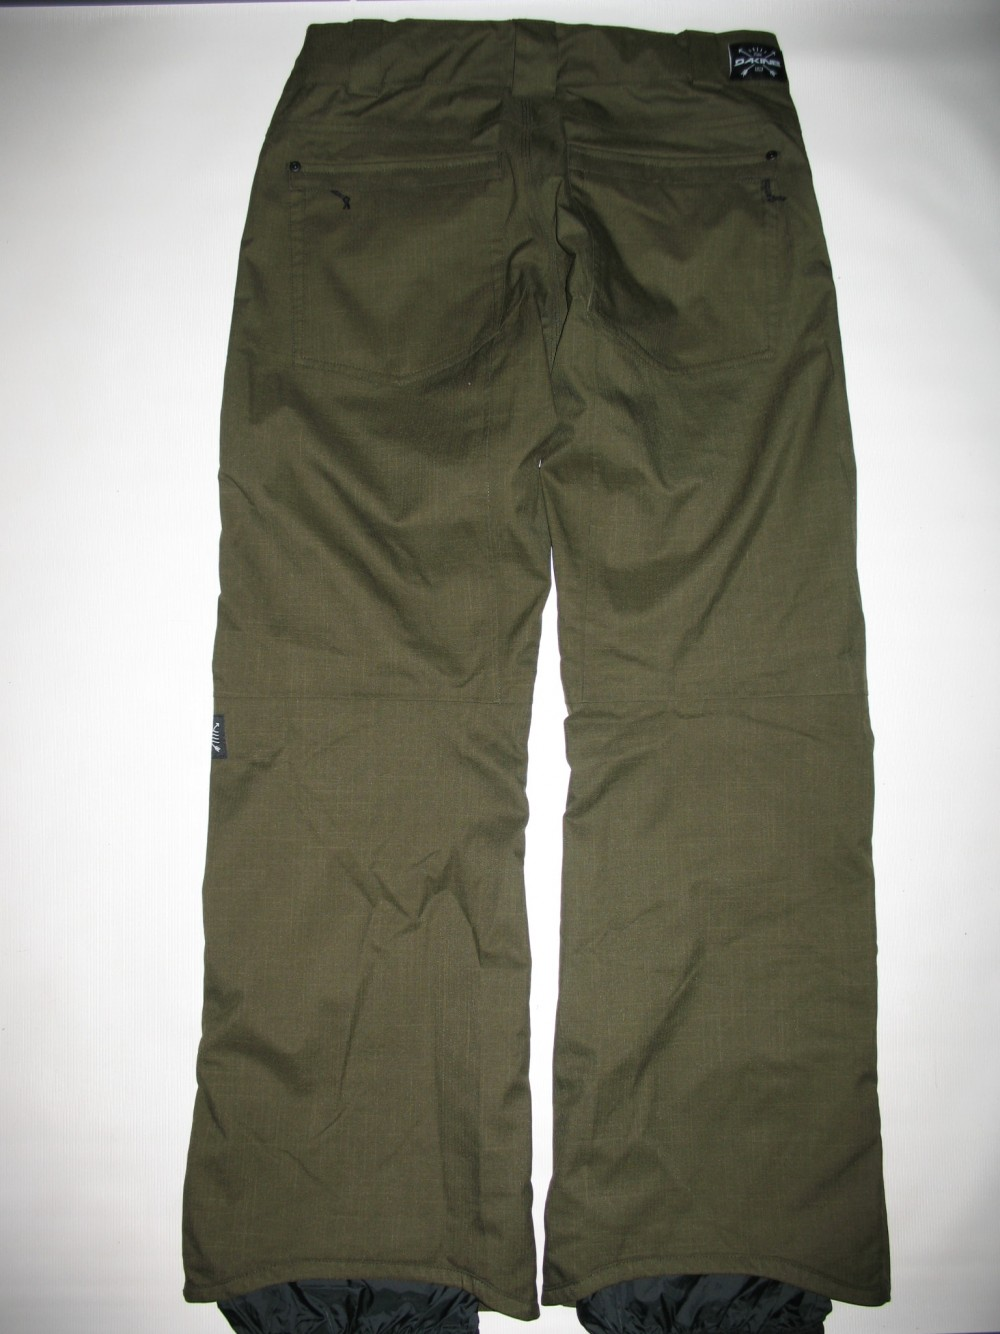 Штаны DAKINE Miner jungle ski/snowboard pants (размер L) - 2